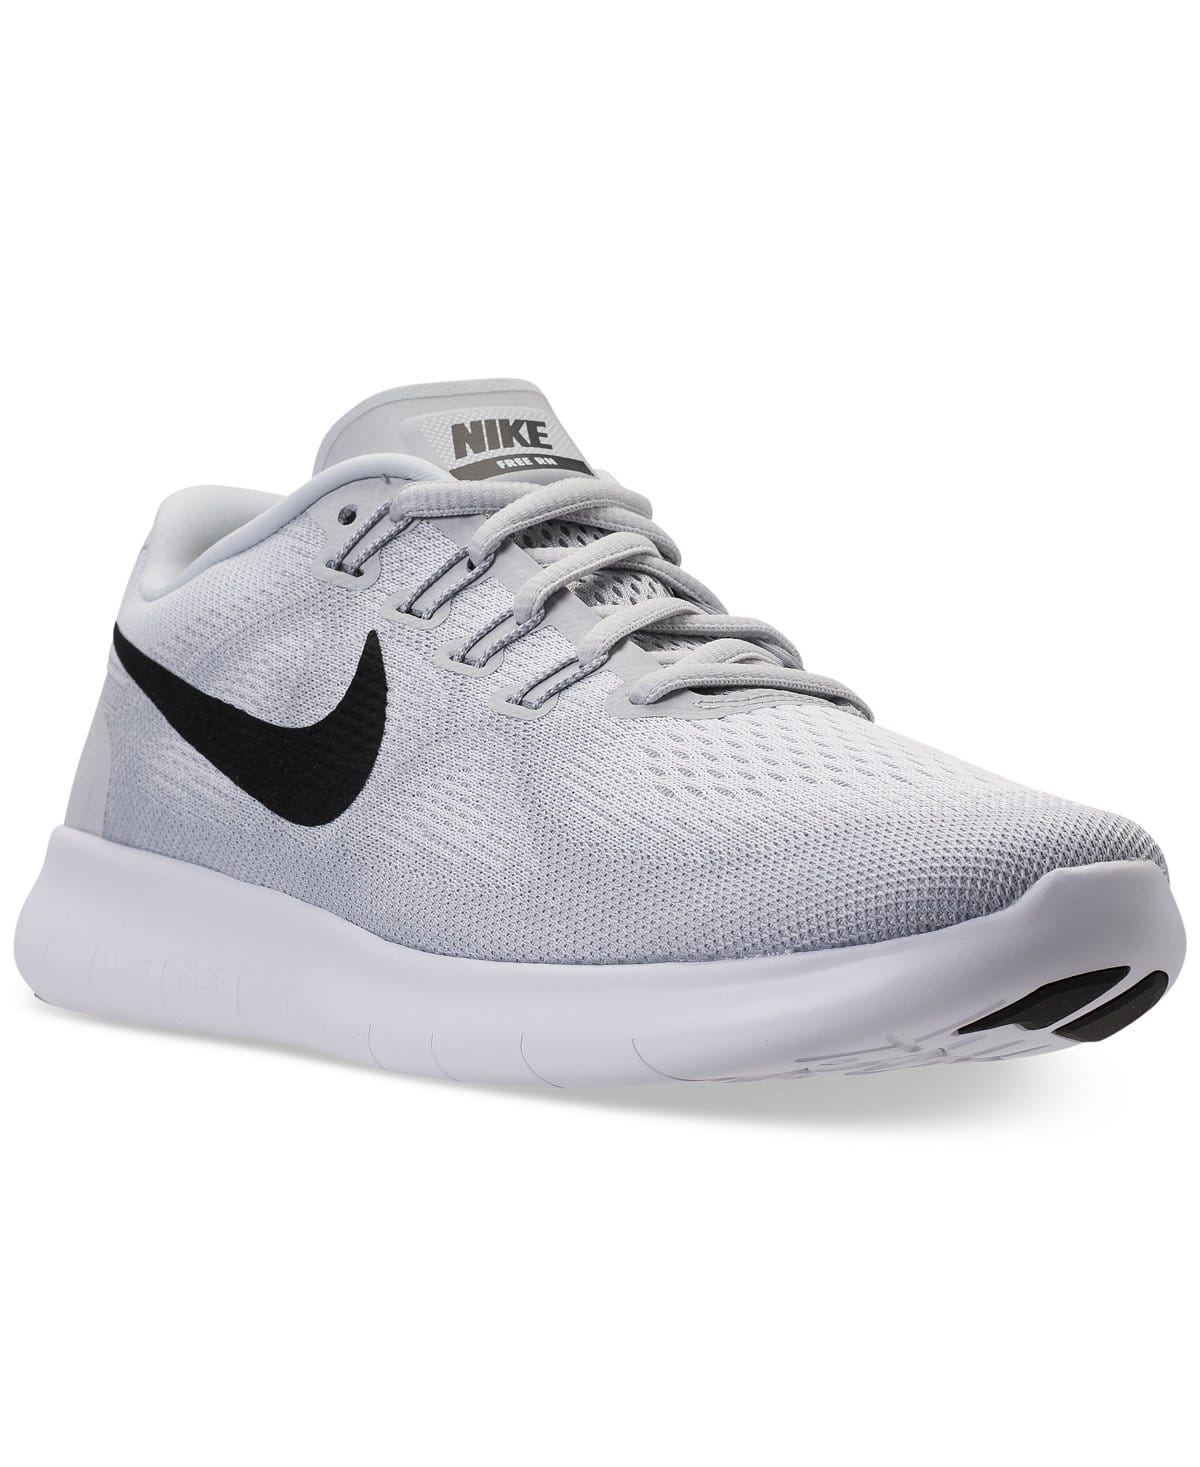 the latest ca910 67b34 Nike Free Run 2017 Shoes: Women's from $45, Men's from ...